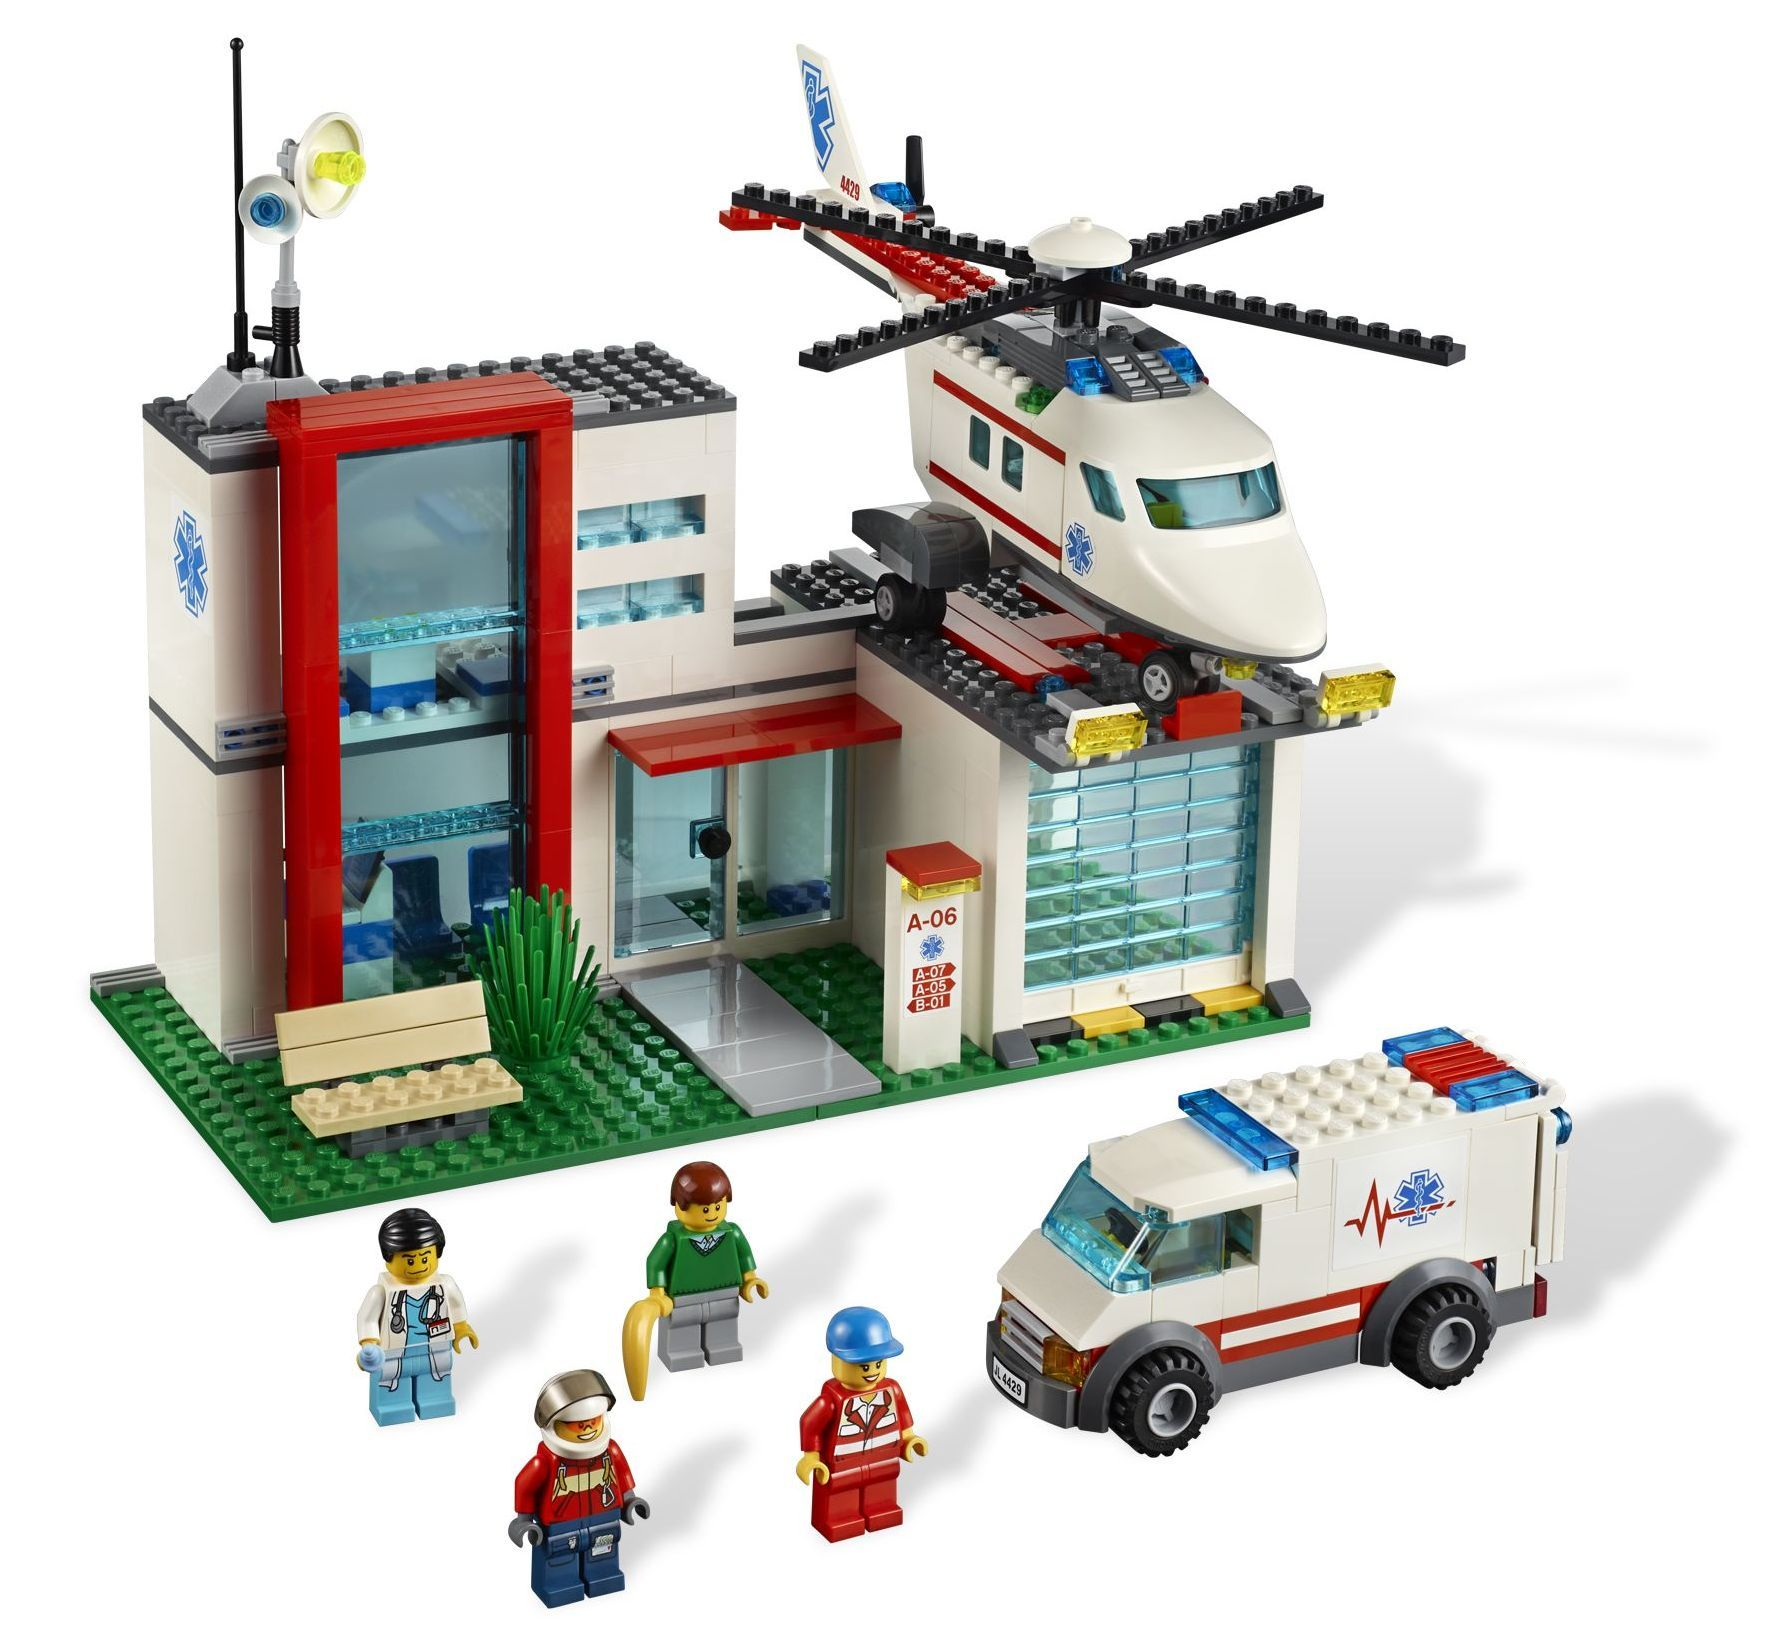 ibrickcity lego 4429 hospital helicopeter rescue summer 2 Lego City 4429 – Hospital / Helicopter Rescue